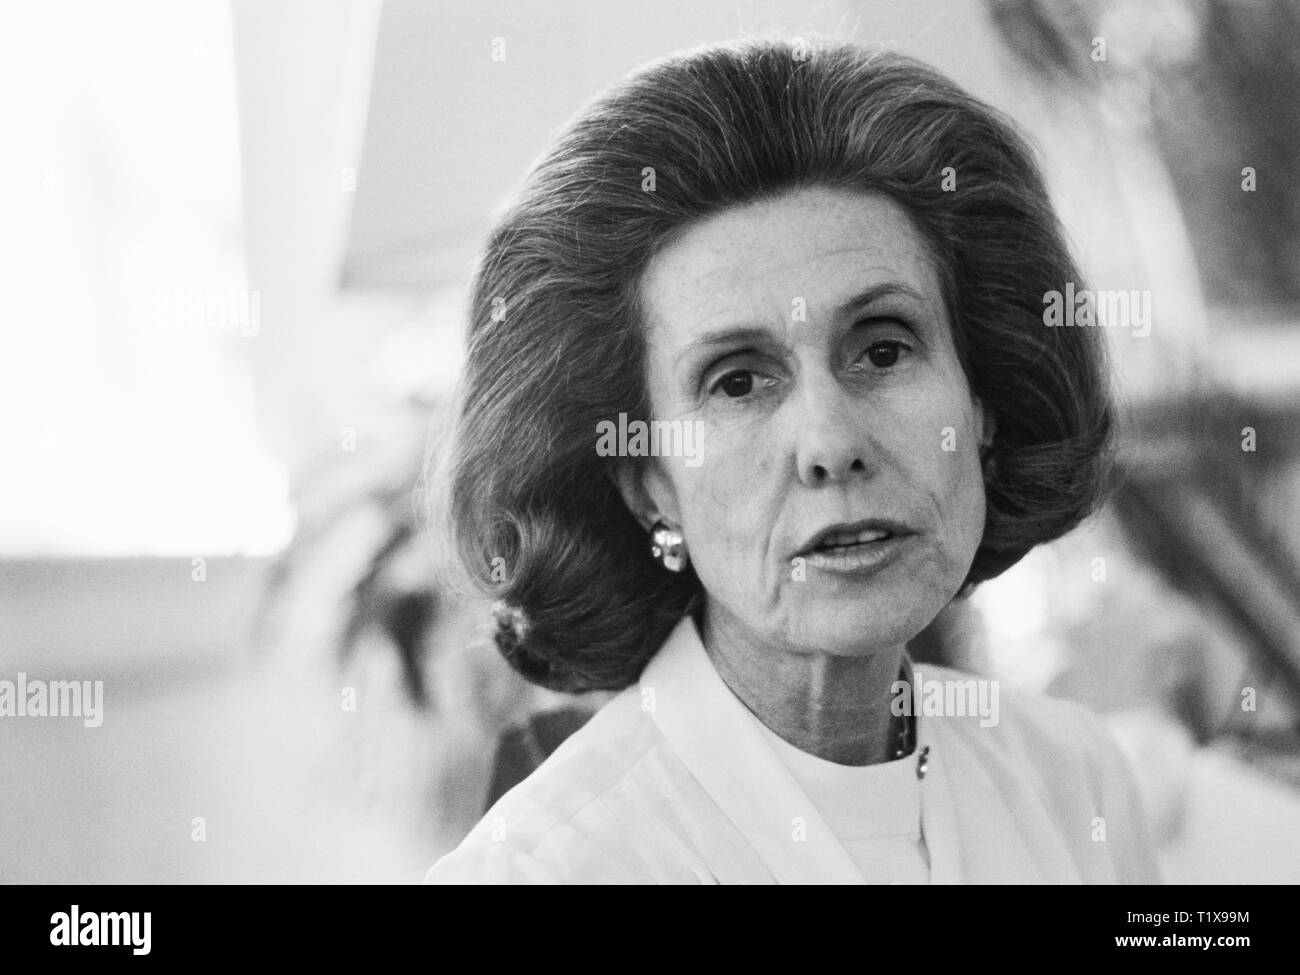 Anne Beau Cox Chambers - born December 1, 1919 - is an American media proprietor, who had a stake of interest in Cox Enterprises, a privately held media empire that includes newspapers, television, radio, cable television, and other businesses.[3]  She is the daughter of James M. Cox, a newspaper publisher and 1920 Democratic Presidential nominee, and his second wife, Margaretta Parker Blair. She owns and controls her father's business interests, through Cox Enterprises. For 33 years she co-owned the family company with her sister, Barbara Cox Anthony, who died on May 28, 2007. - Stock Image